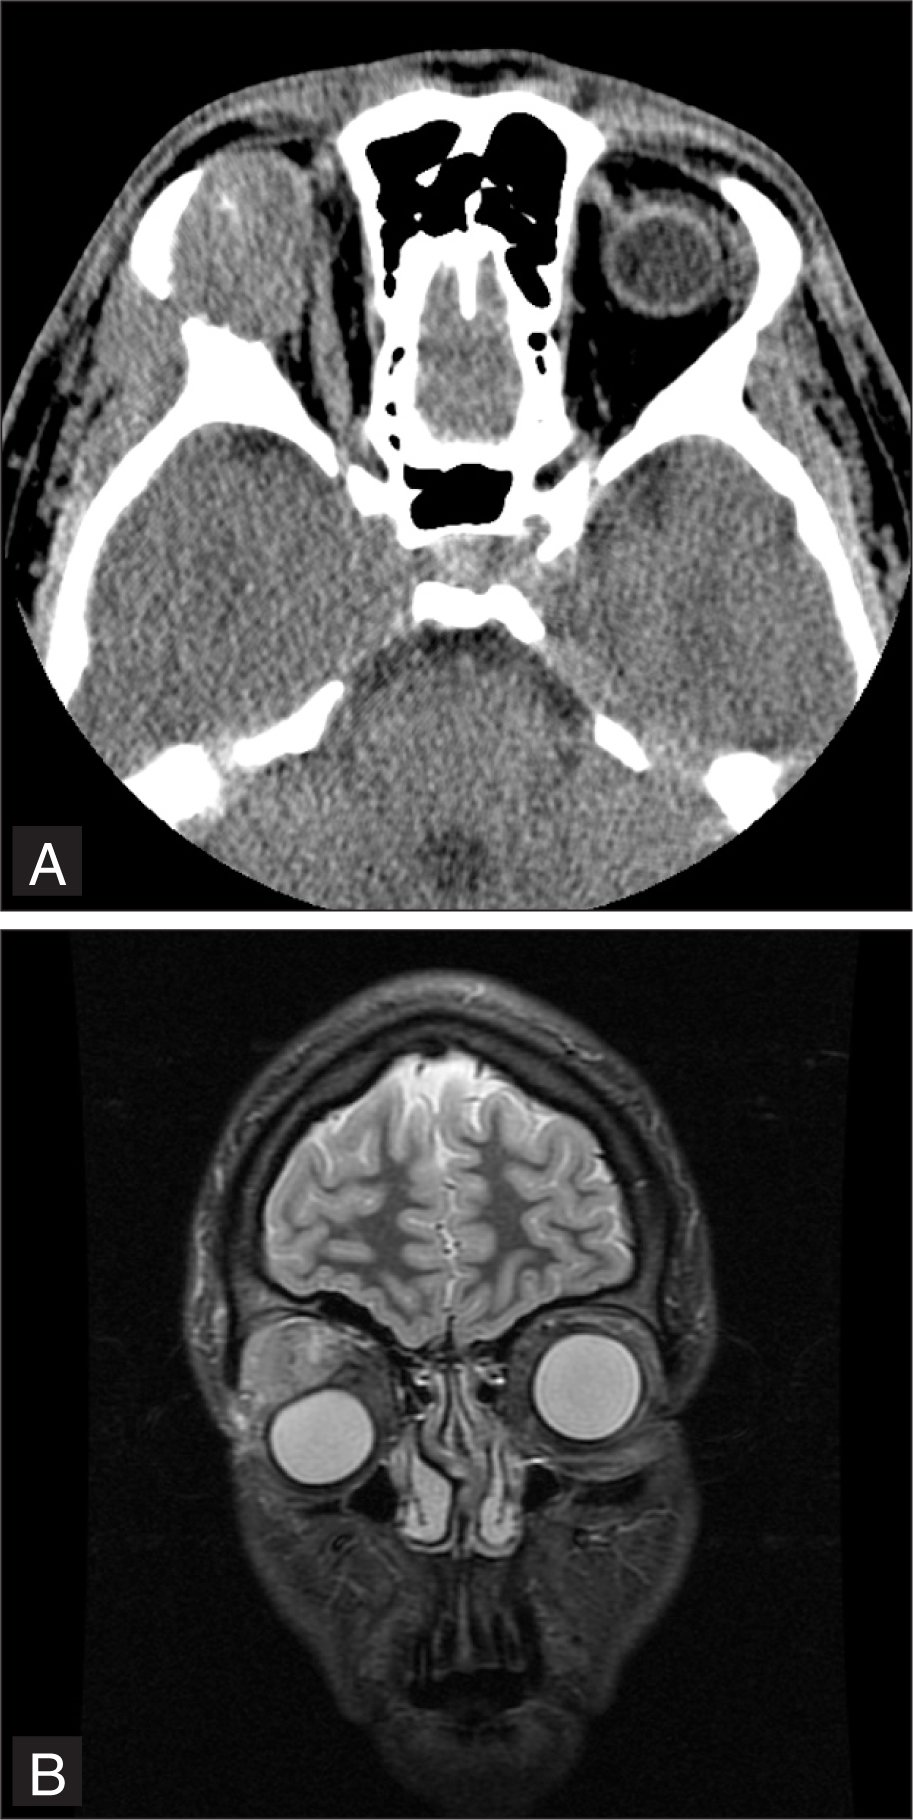 (A) Axial Computed Tomography and (B) Coronal T-2 Weighted Magnetic Resonance Imaging Demonstrate a Right Lacrimal Gland Mass with Contiguous Invasion Through the Lateral Orbital Wall Invading the Temporalis Muscle.